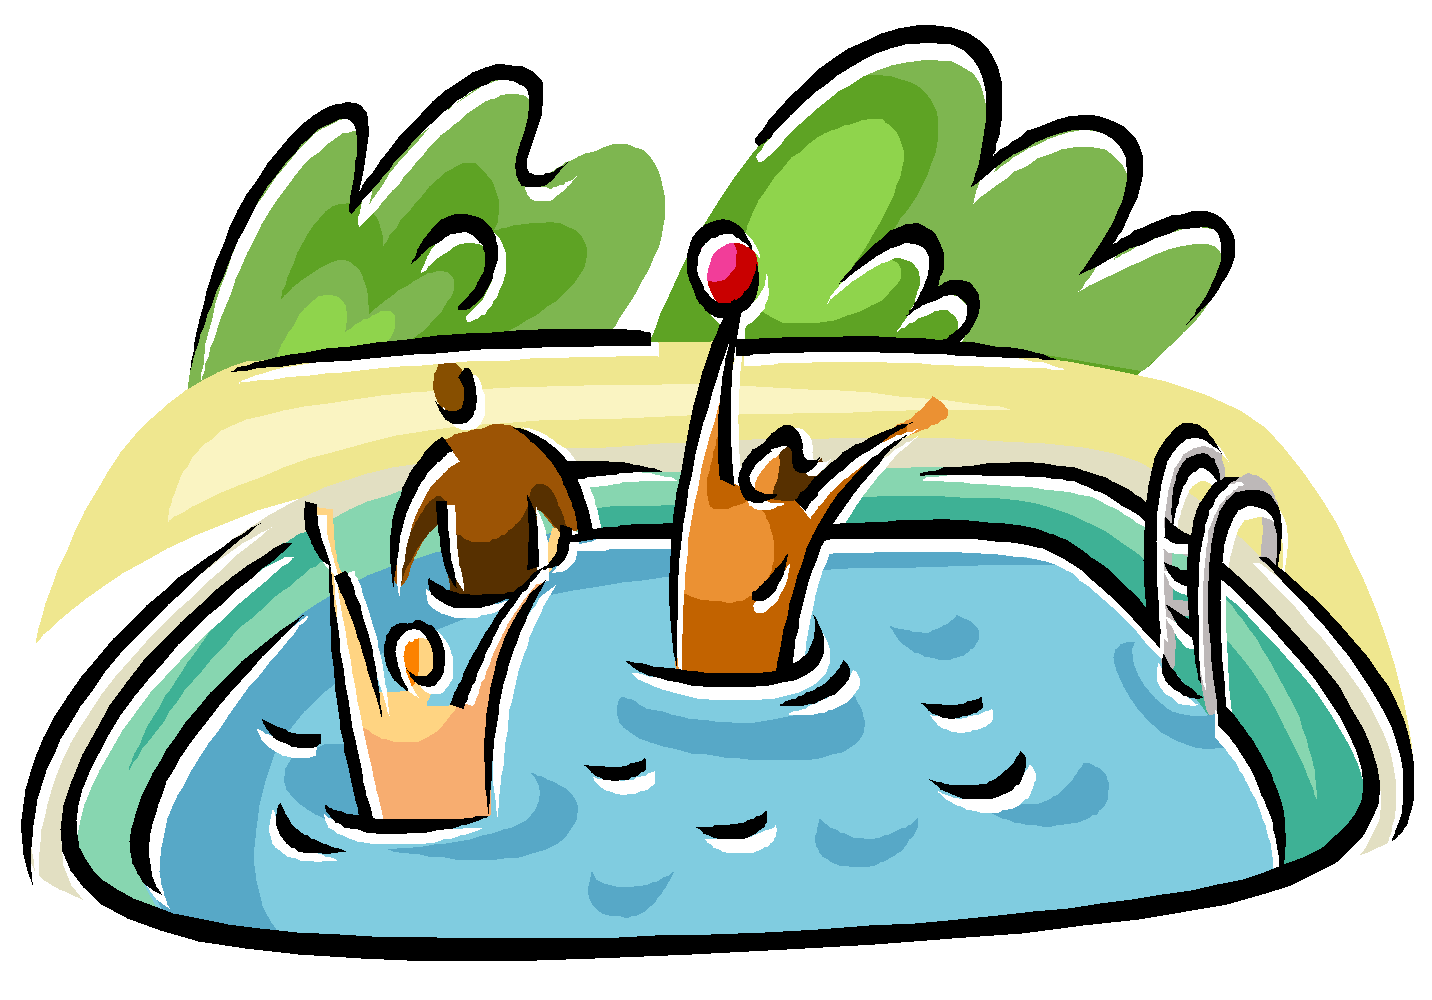 service clipart at getdrawings com free for personal use service rh getdrawings com service clipartof service@clipartof